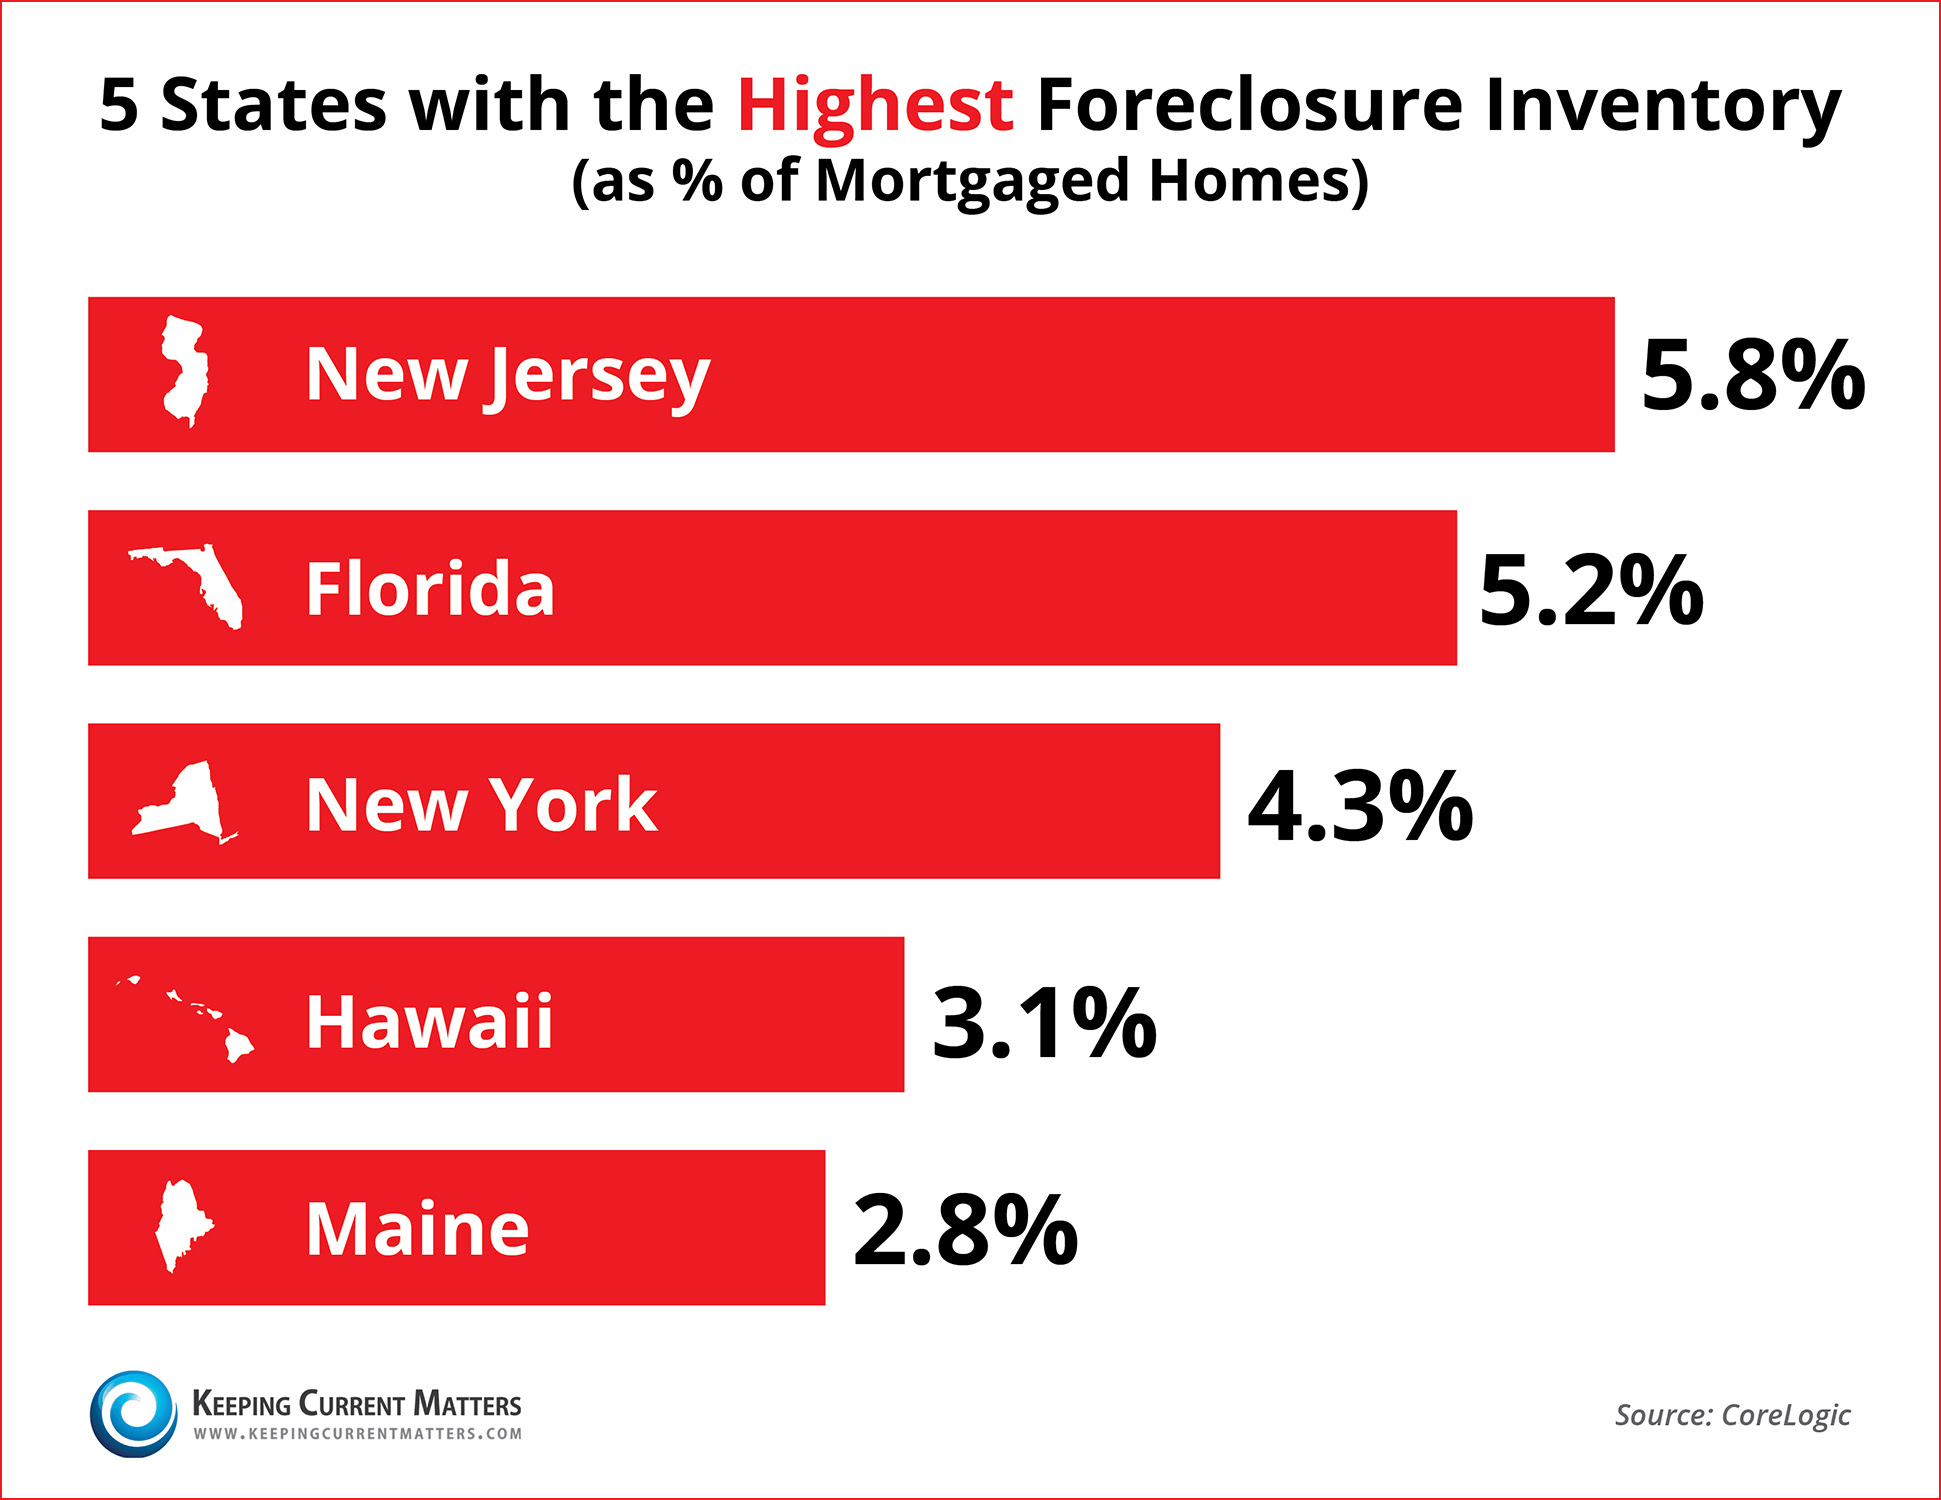 CoreLogic Foreclosure Report Top 5 States | Keeping Current Matters